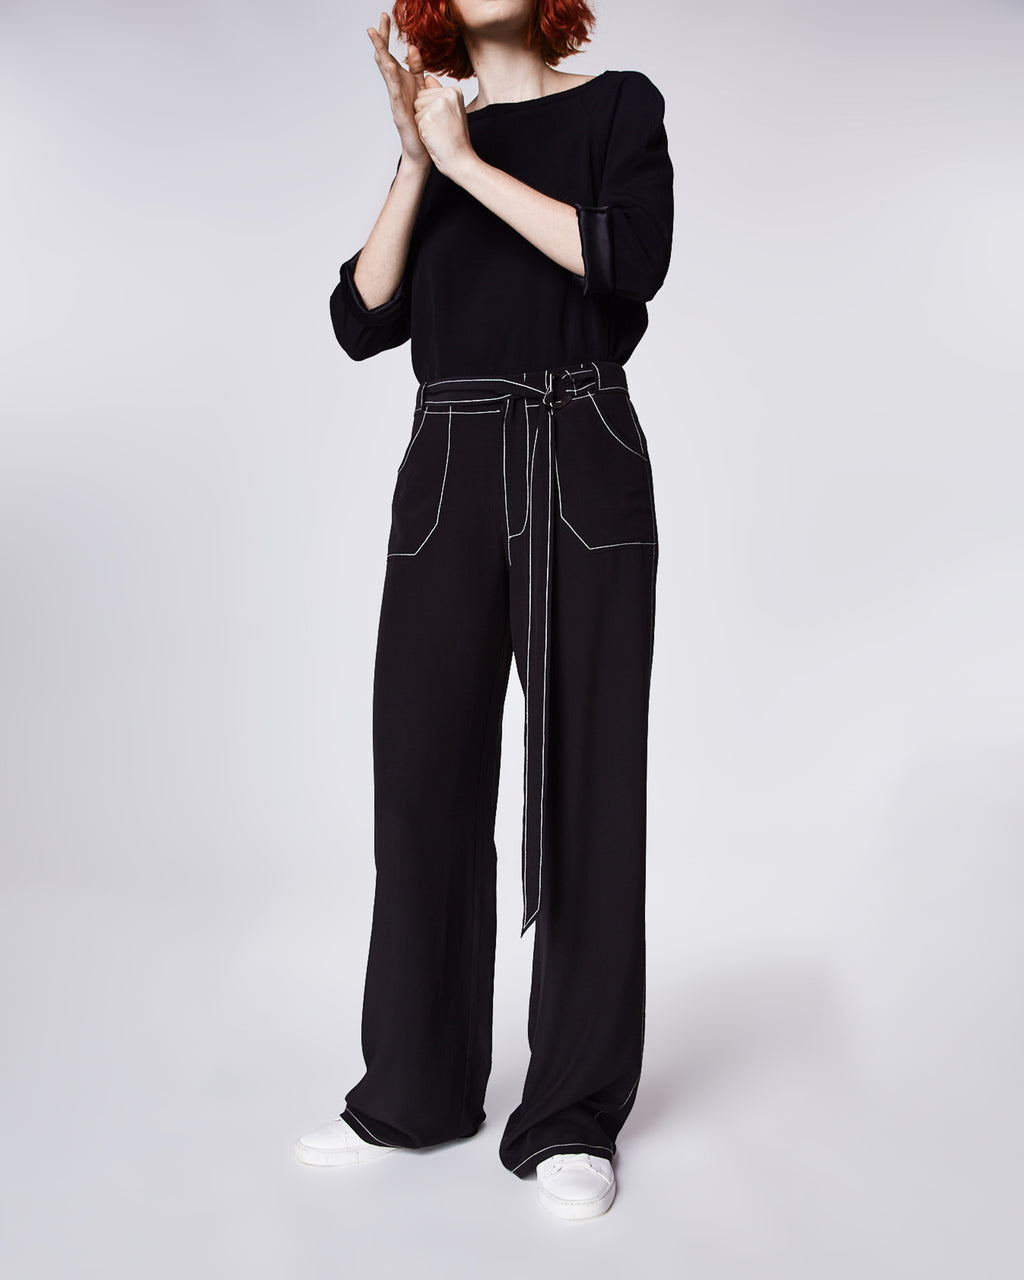 BO10149 - SOLID SILK PANT W/ TOPSTITCH - bottoms - pants - ALL IN THE DETAILS. WITH CONTRASTING WHITE STITCHING, THESE HIGH-WAISTED PANTS FEATURE A WIDE-LEGGED FIT. WEAR WITH BOOTIES OR HEELS TO FINISH THE LOOK. Final Sale